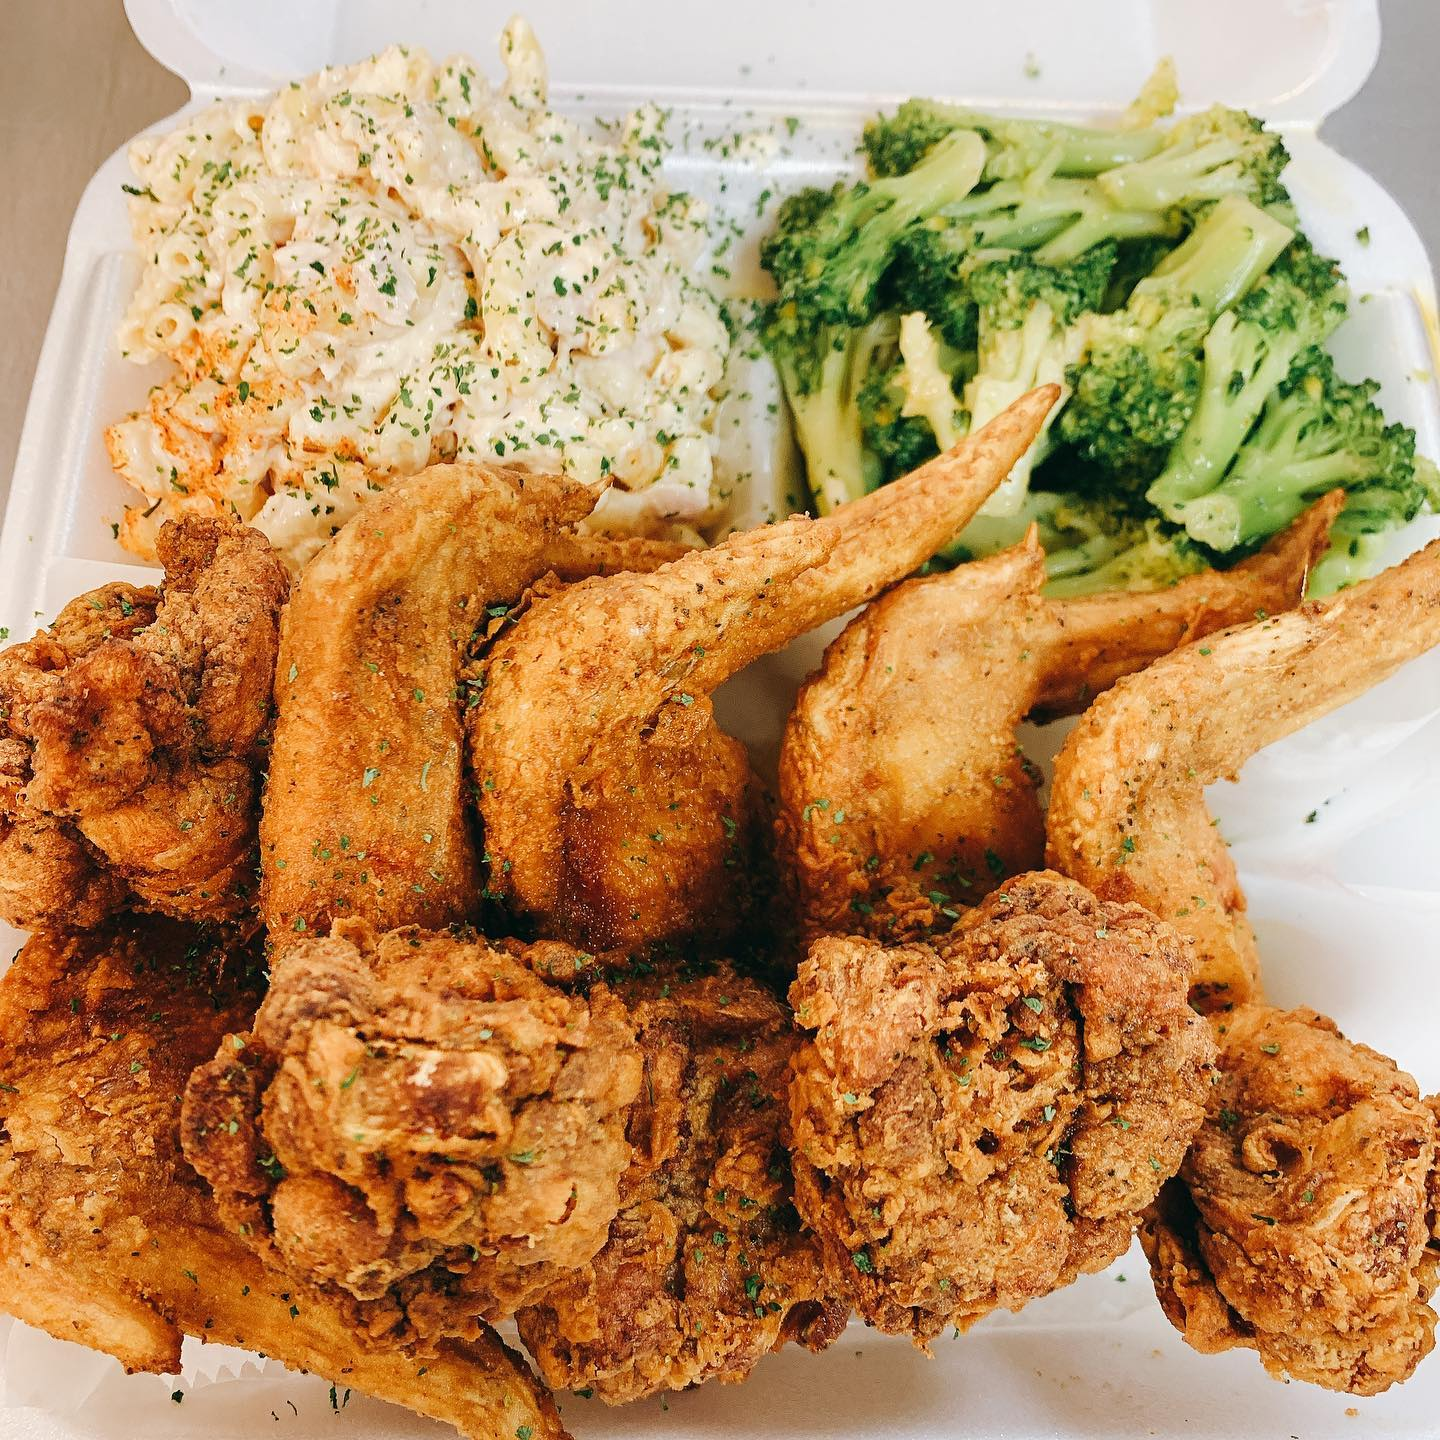 fried chicken platter with broccoli and mac salad